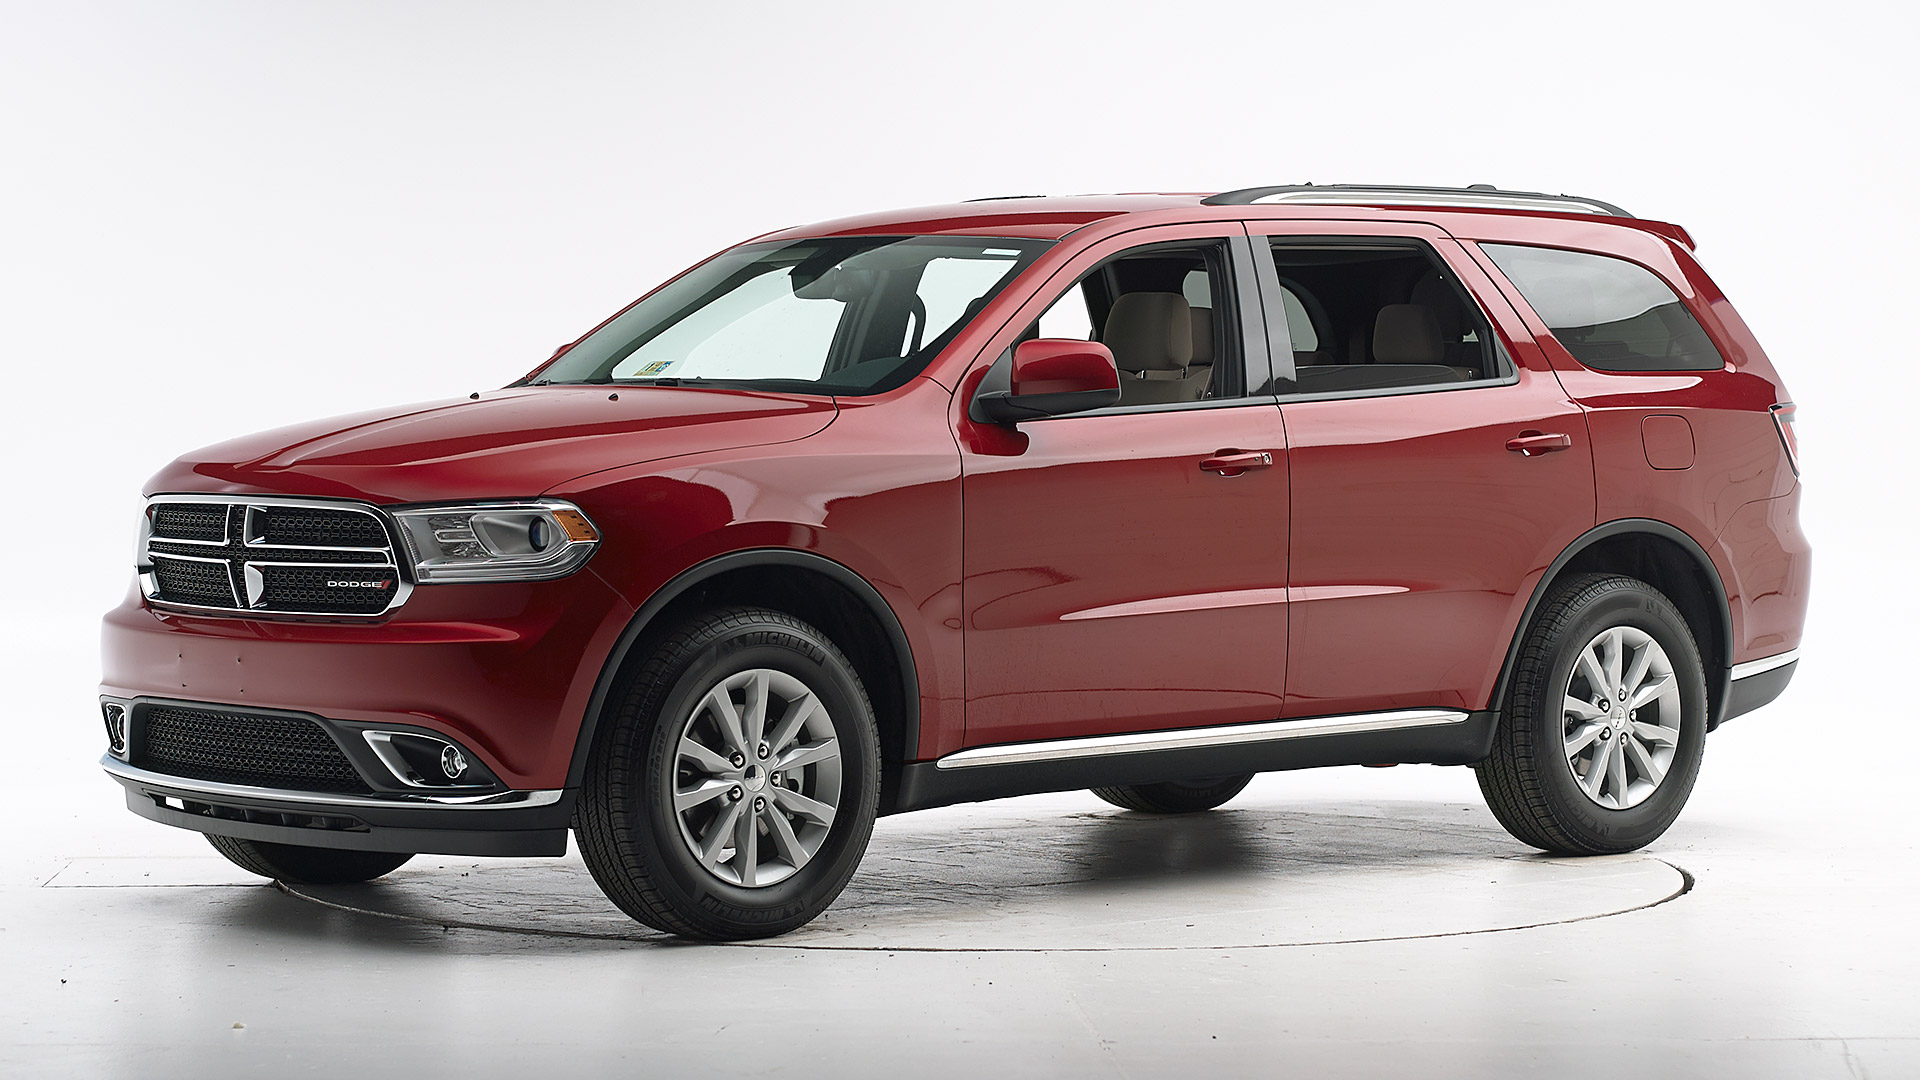 Child Safety Seat Ease Of Use Ratings 2019 Dodge Durango